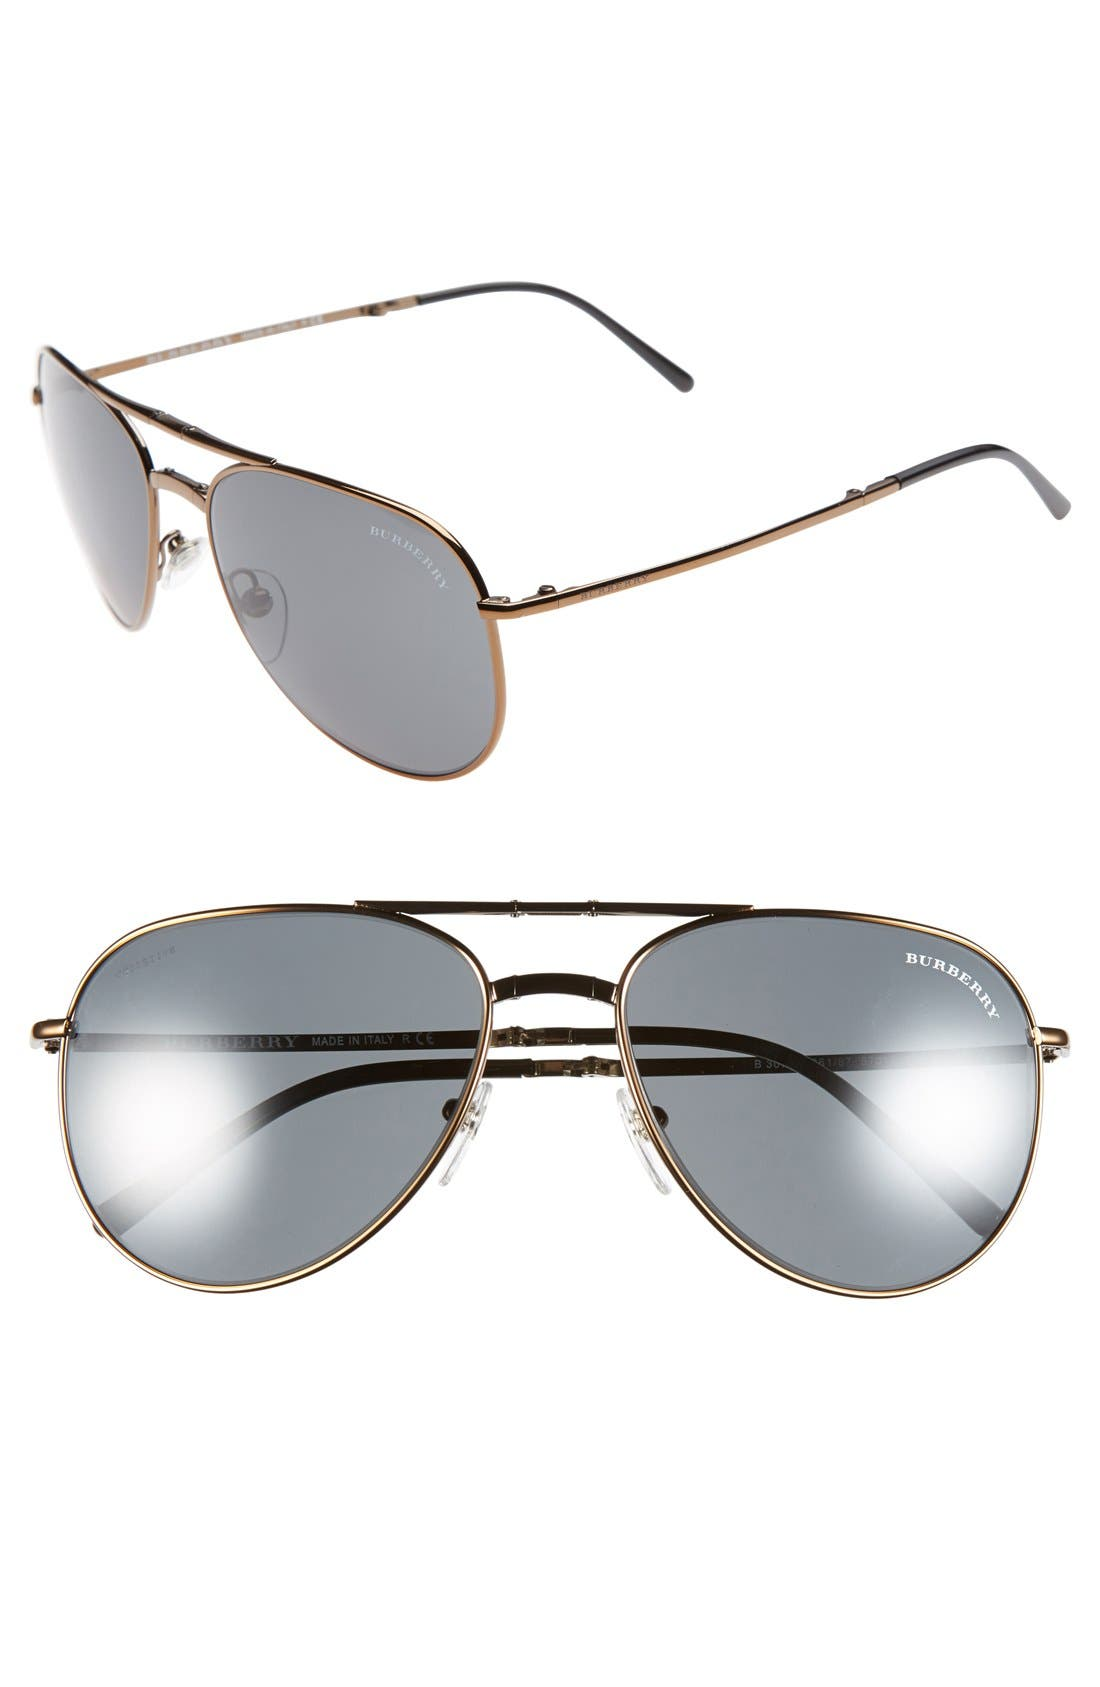 Main Image - Burberry 'Splash' 57mm Foldable Aviator Sunglasses